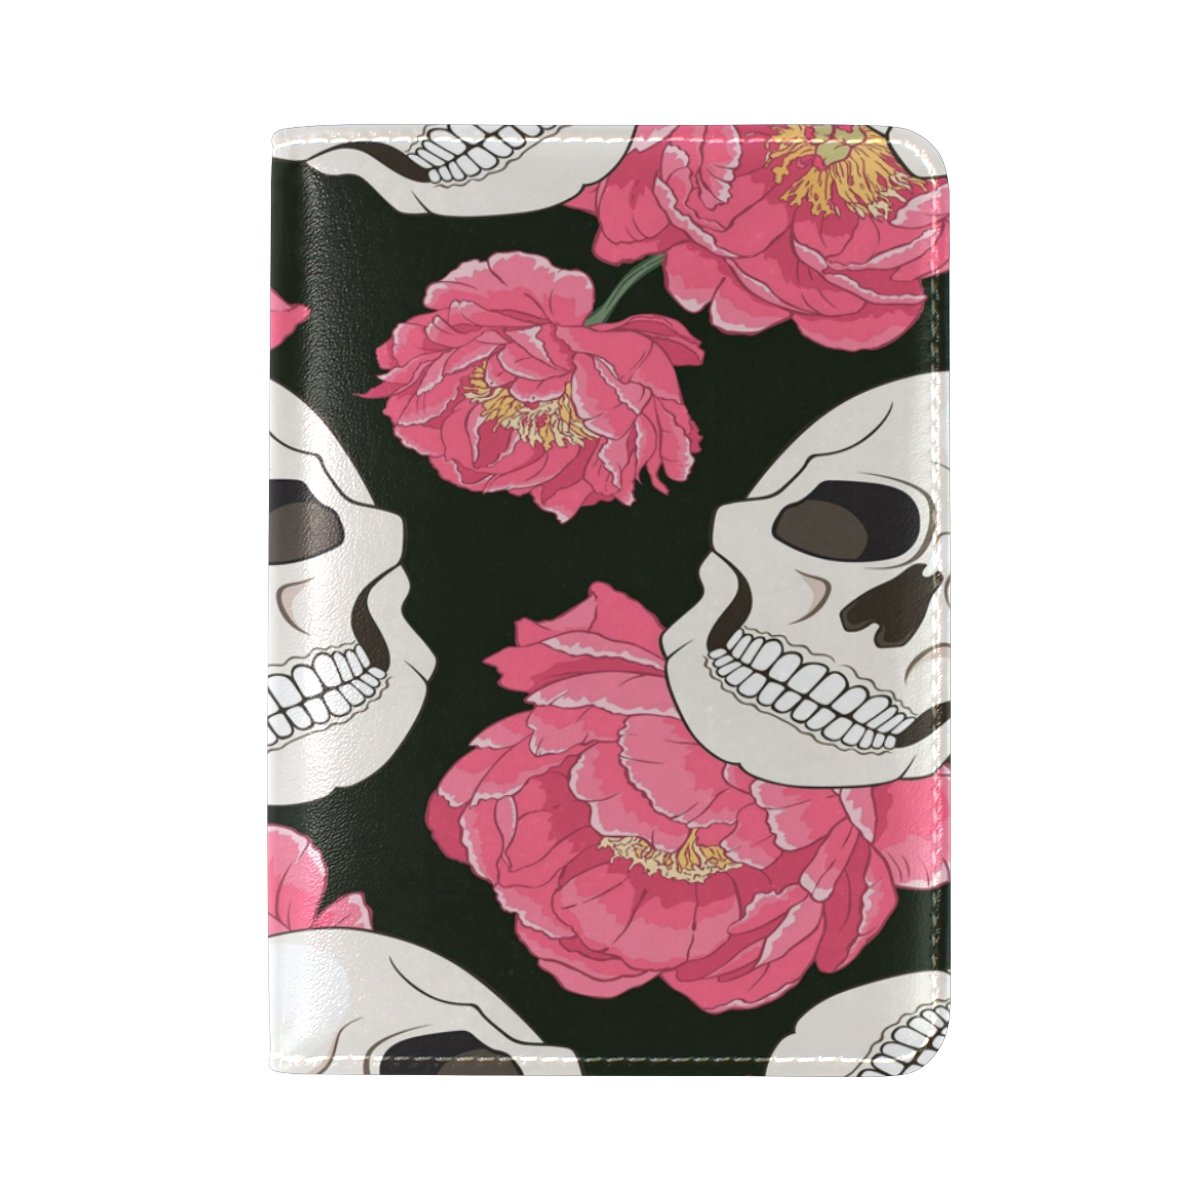 ALAZA Peony Flower Sugar Skull PU Leather Passport Holder Cover Case Travel One Pocket